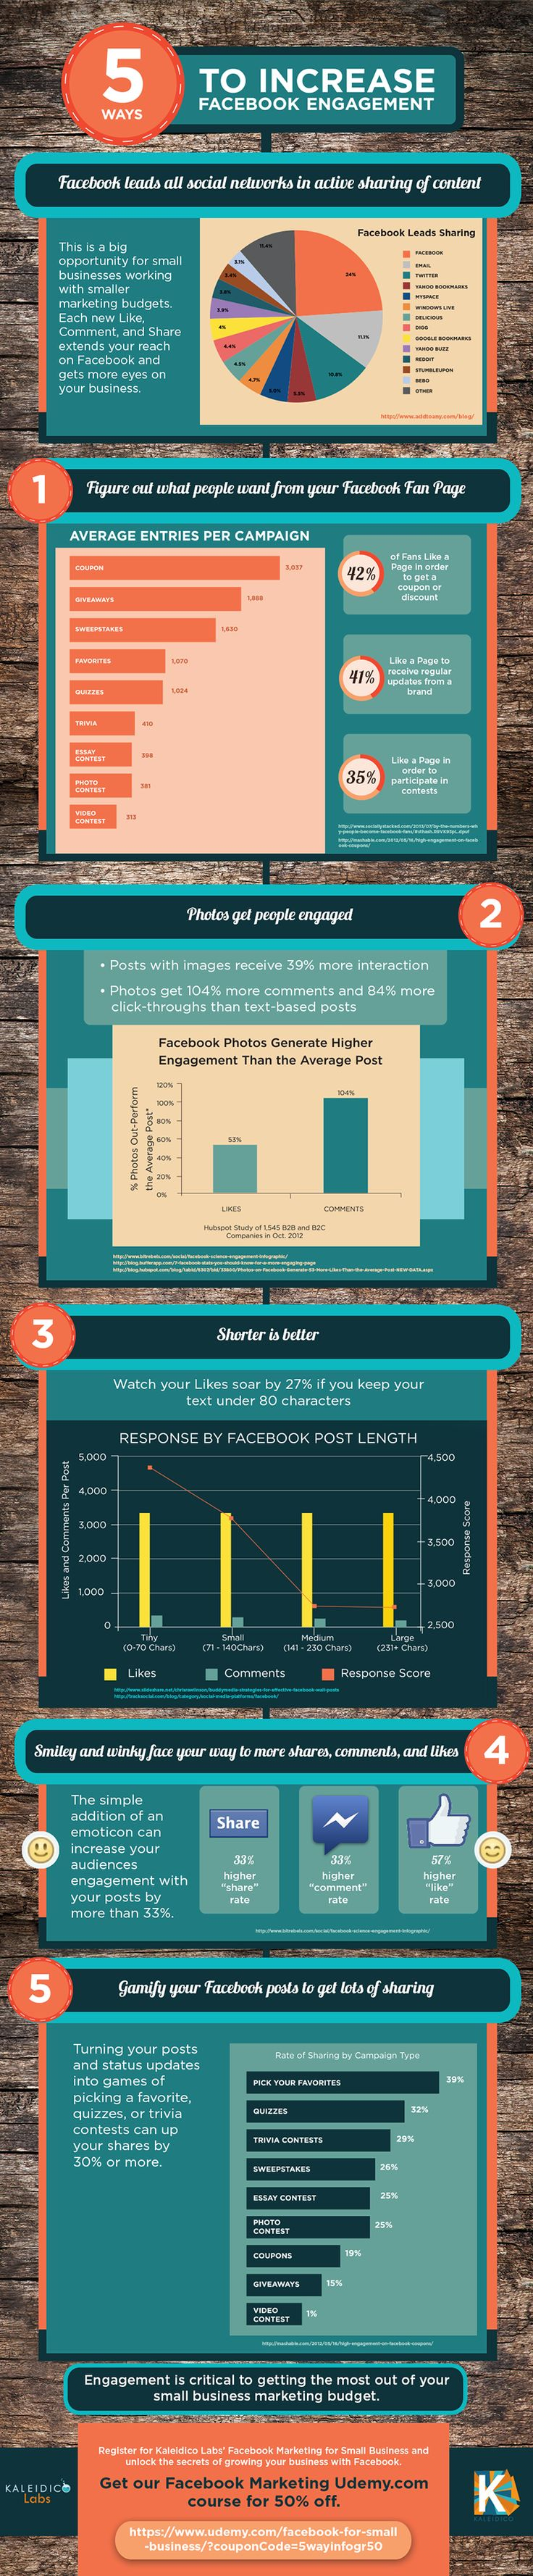 5 Tips to increase Facebook Engagement #infografia #infographic #socialmedia www.november.media